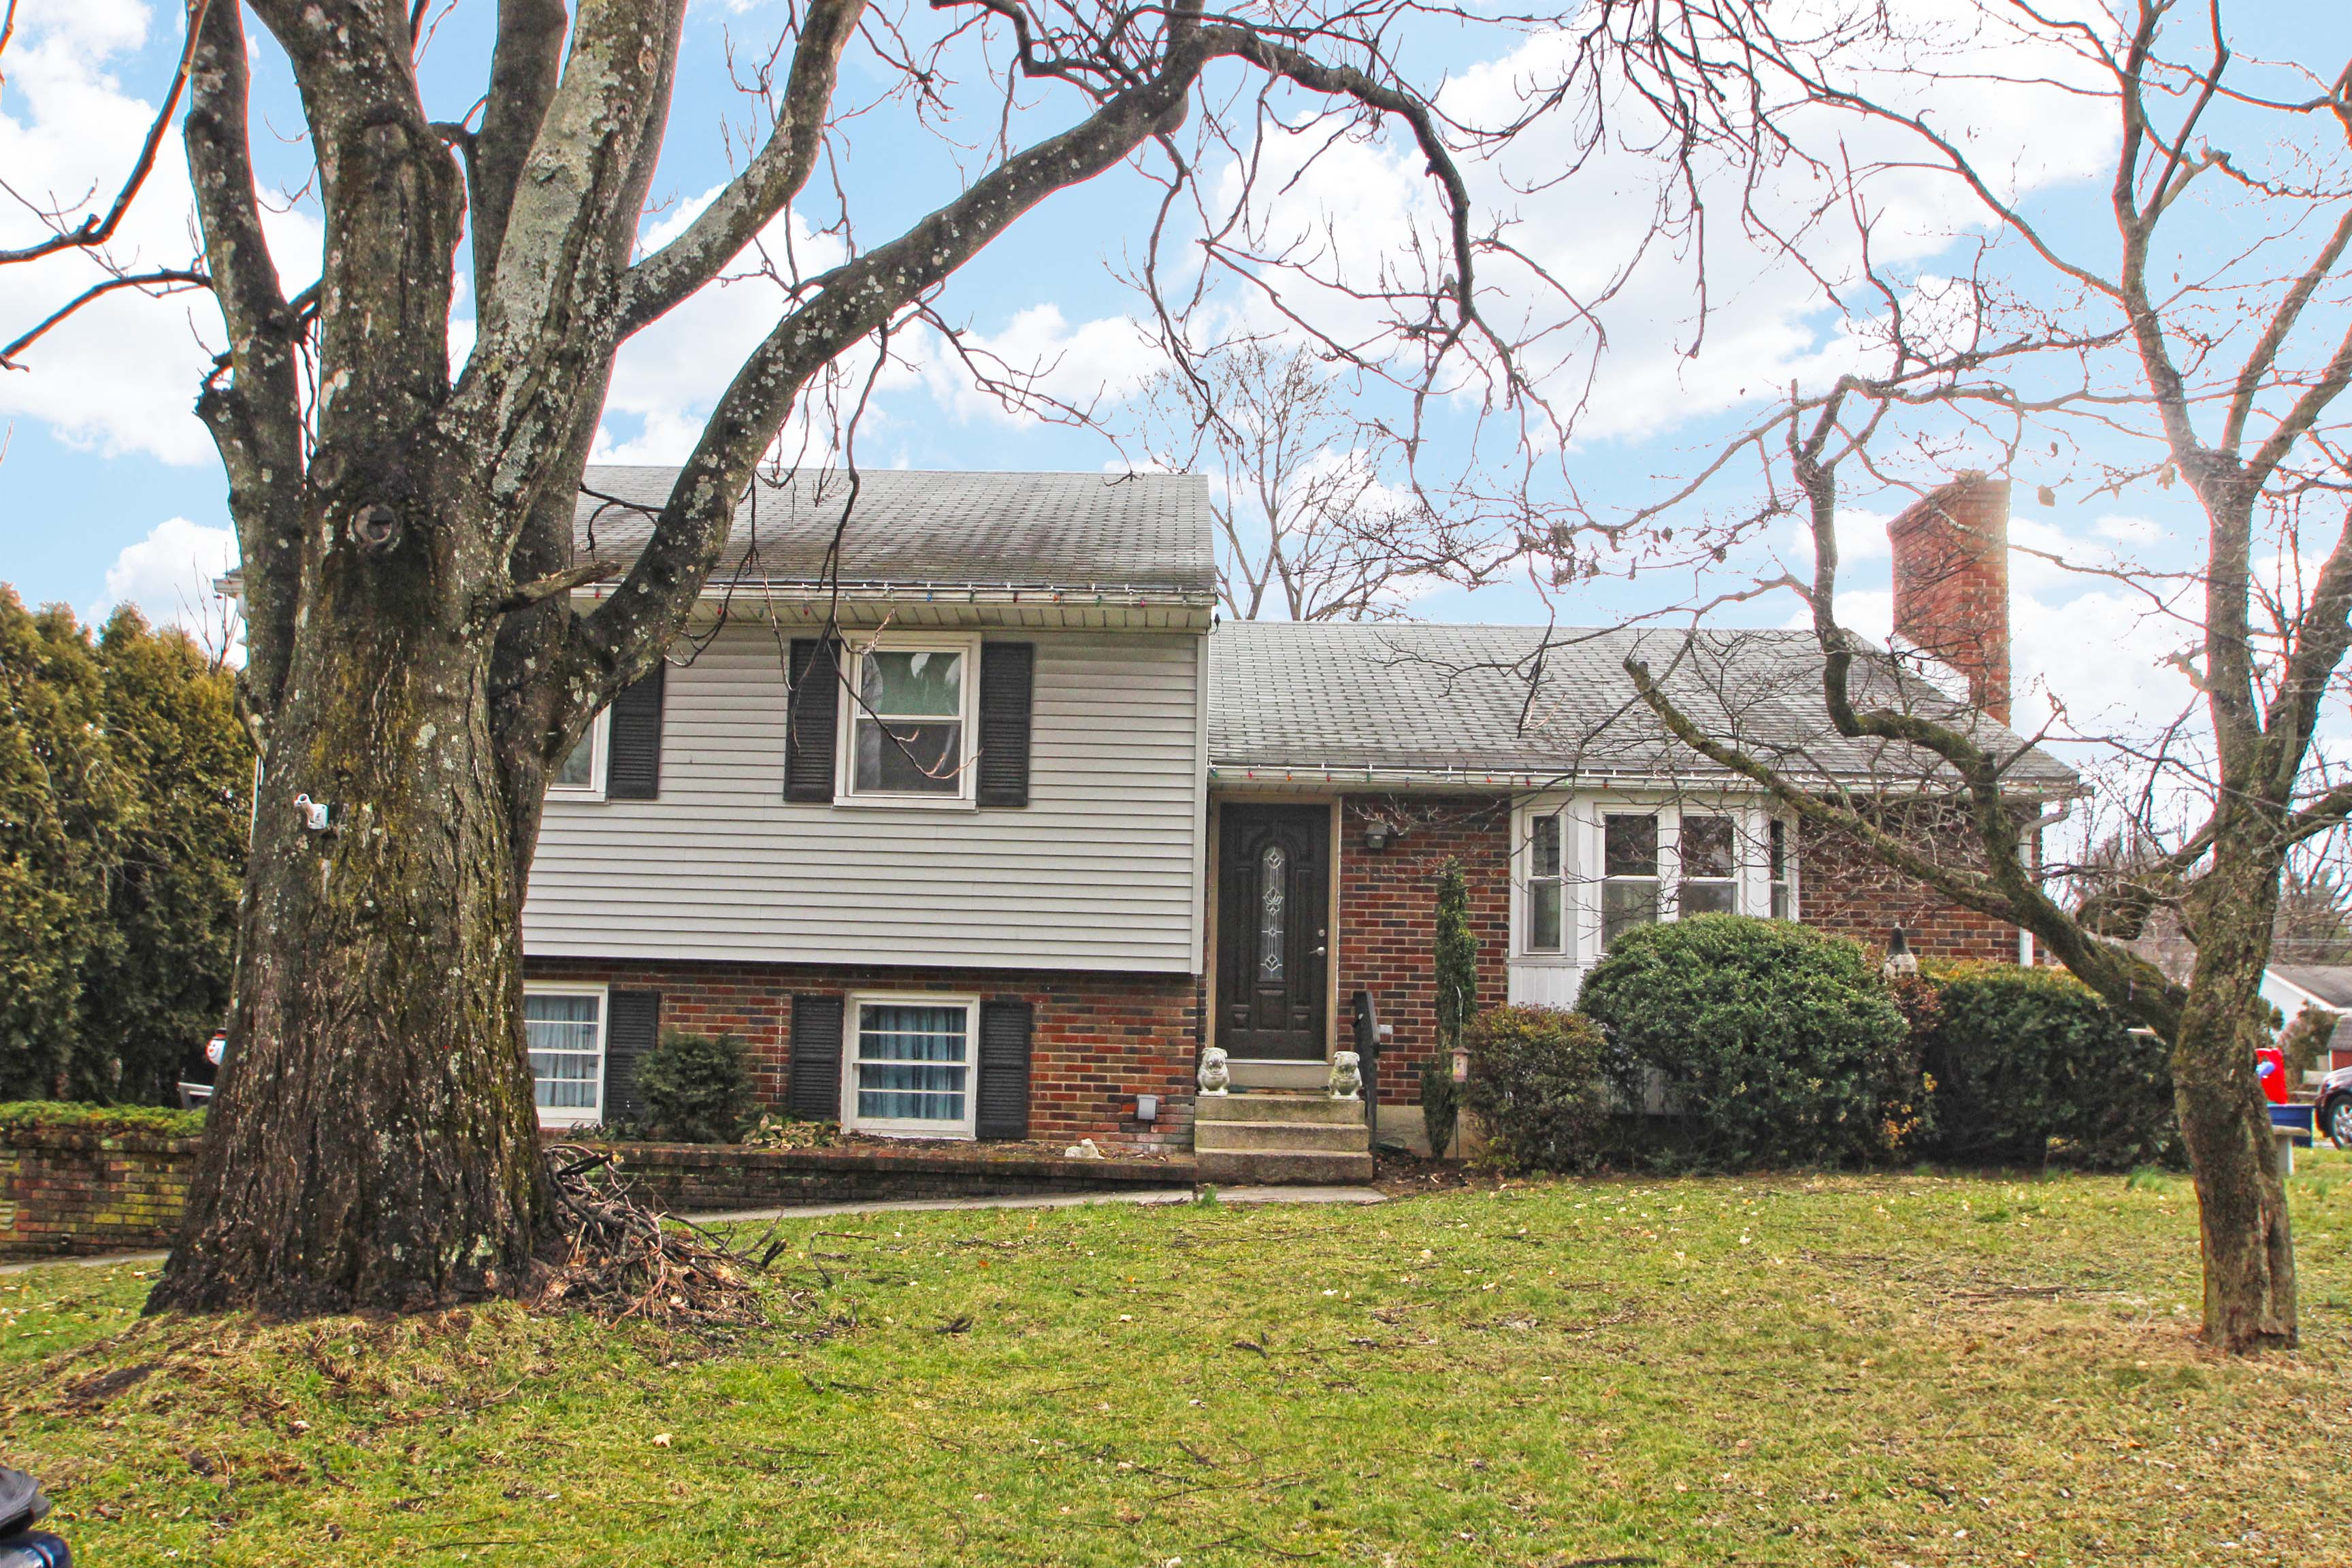 Salisbury Twp Home For Sale Just Listed!